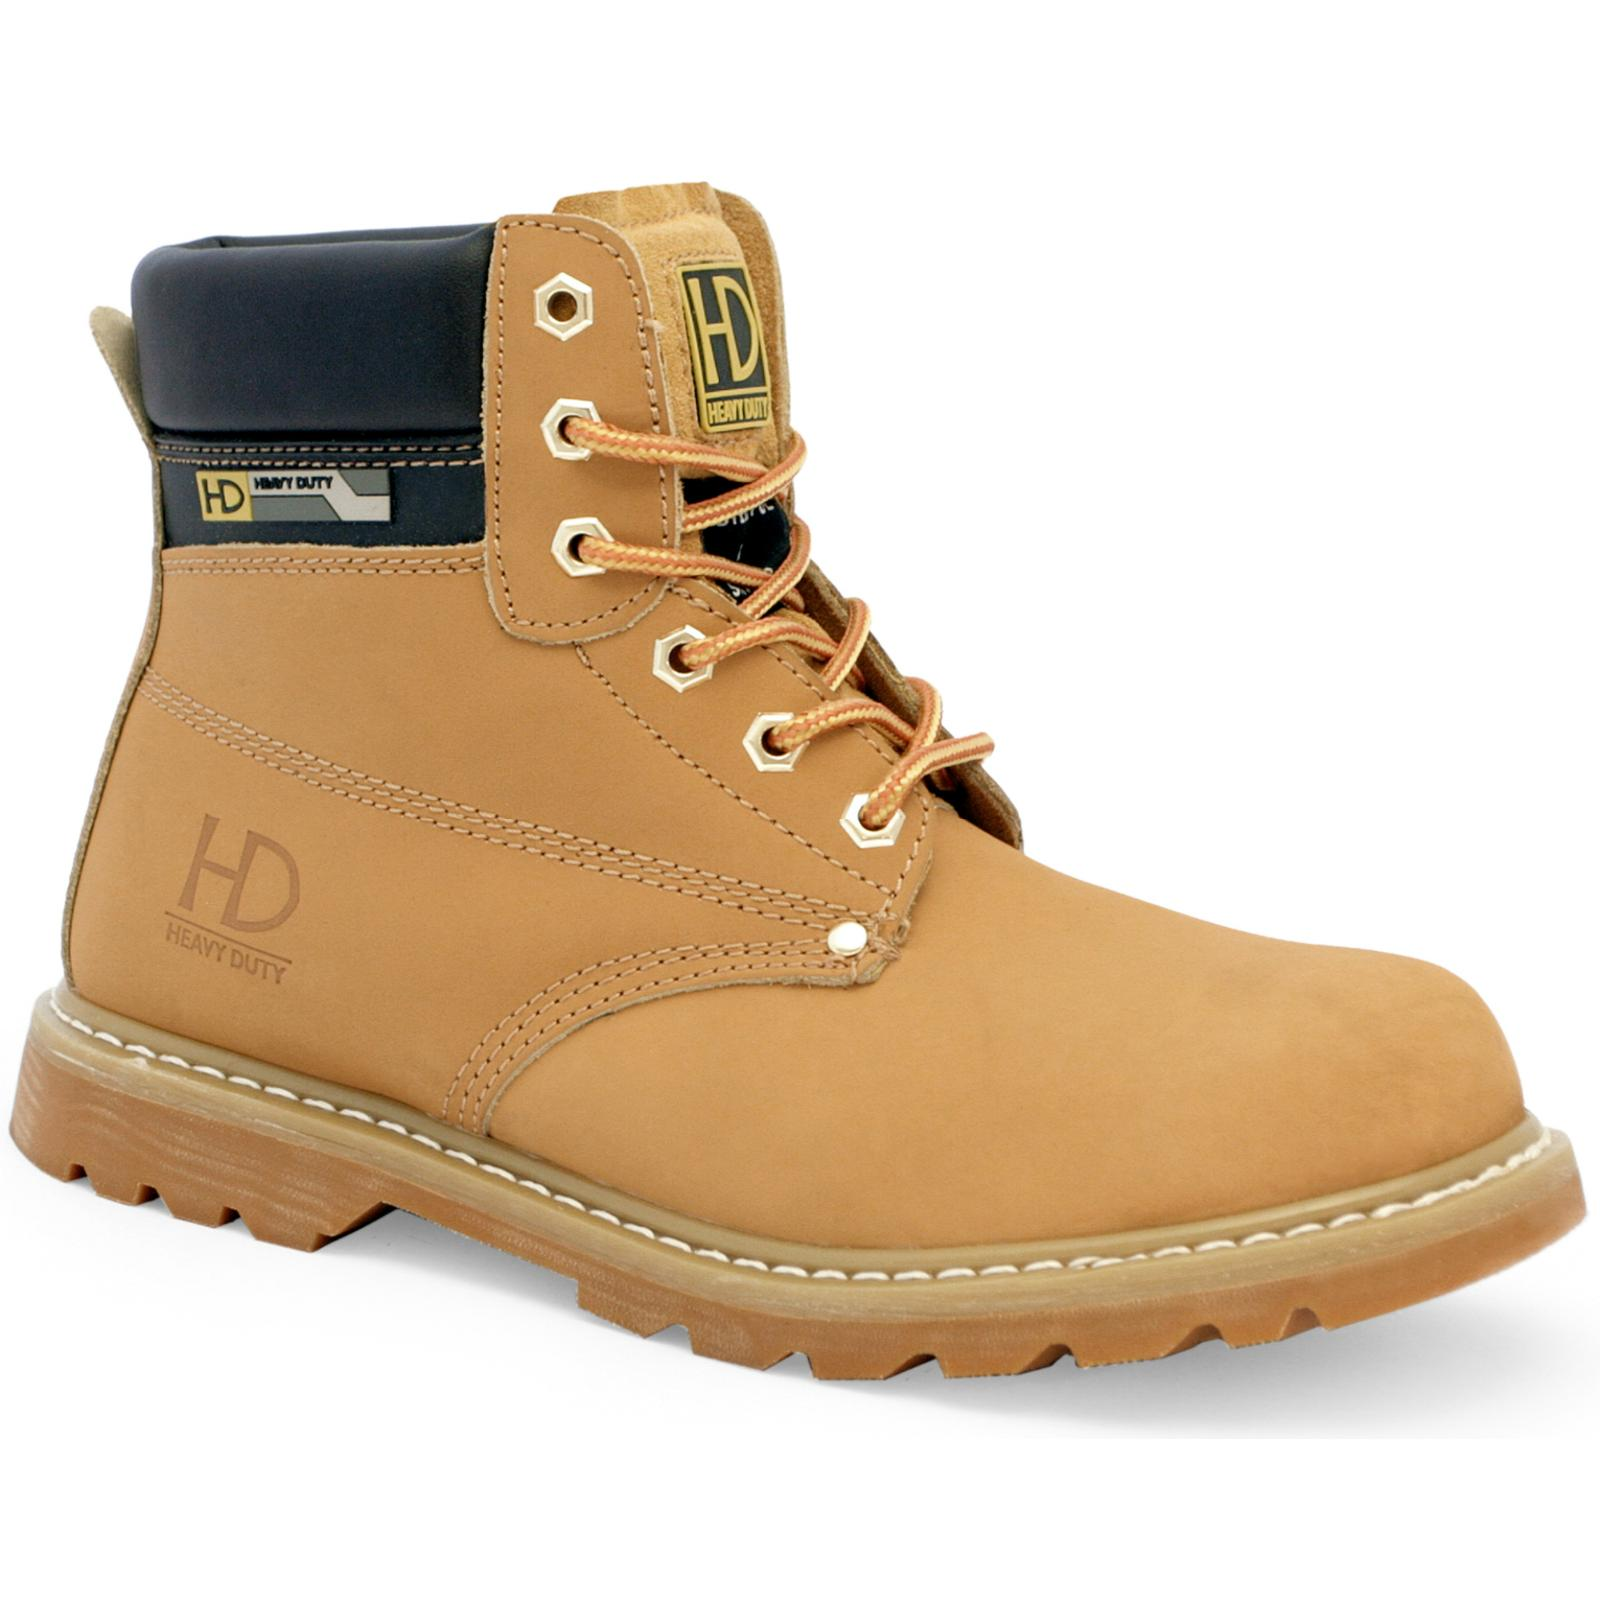 ed377d00662 Details about Heavy Duty Yellow Leather Steel Toe Cap SBP Safety Boots